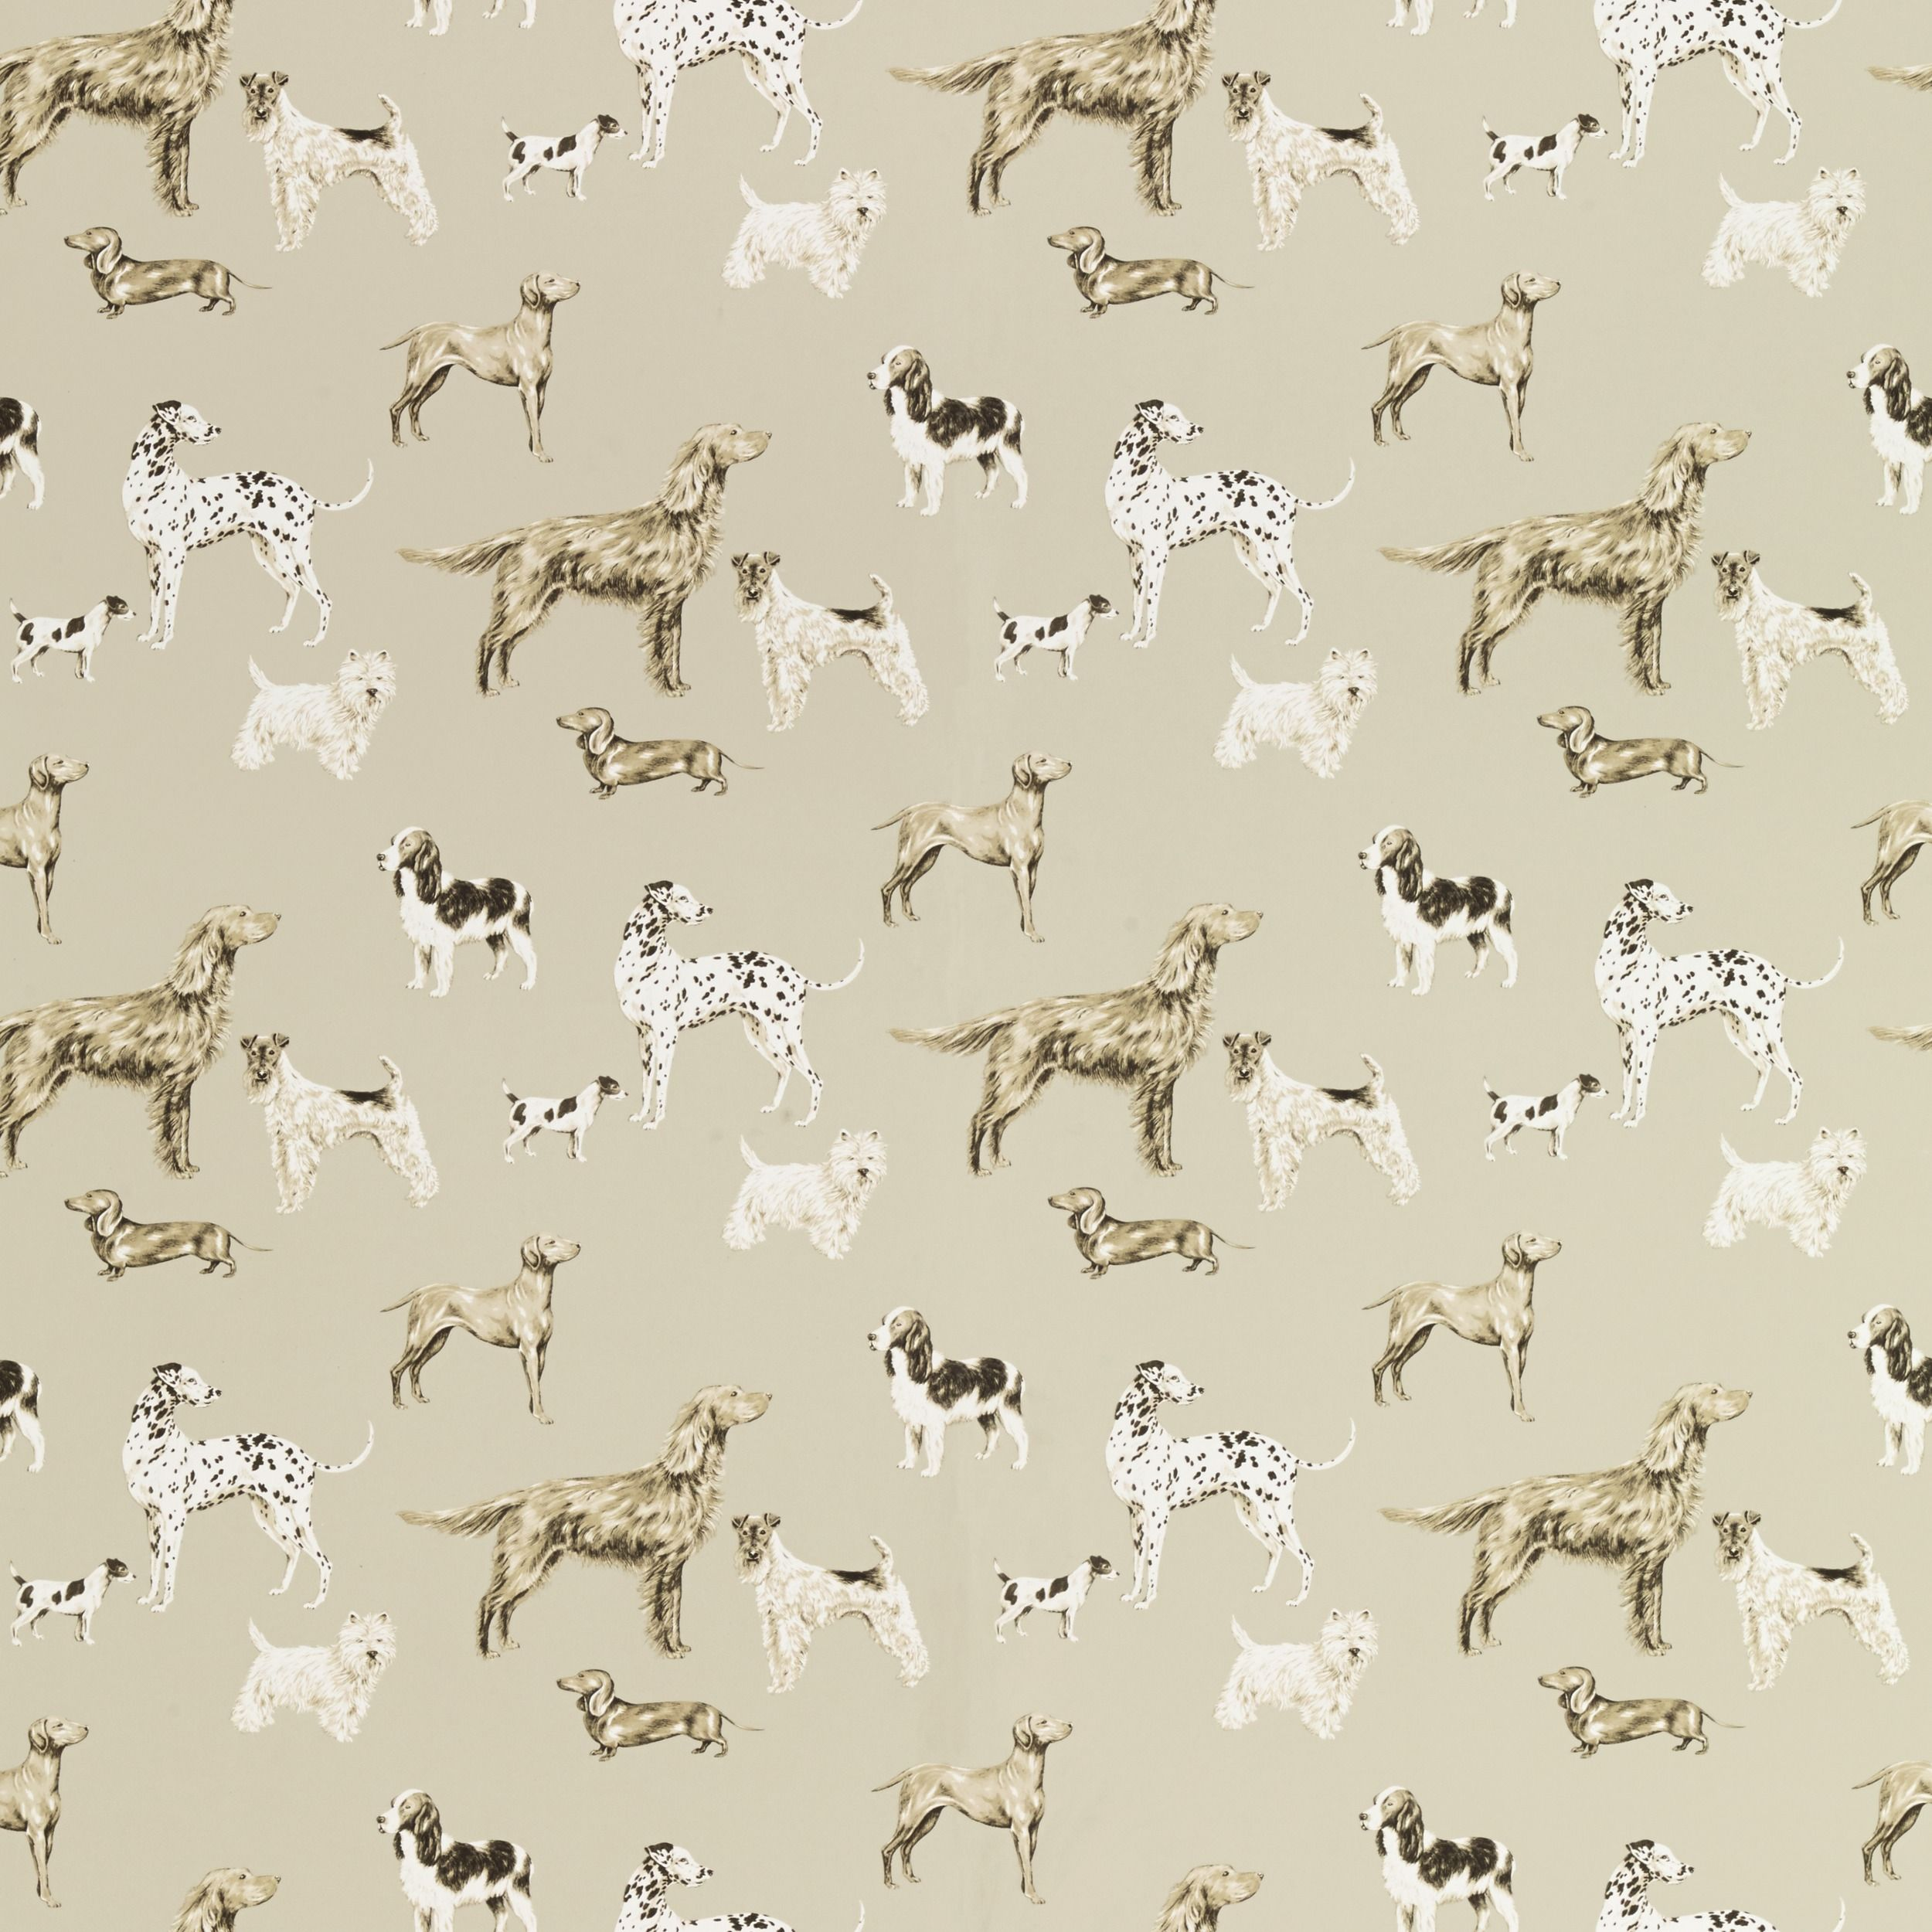 Dog Wallpaper For Walls lauraashleyss14 love this wallpaper for our hallway. a selection